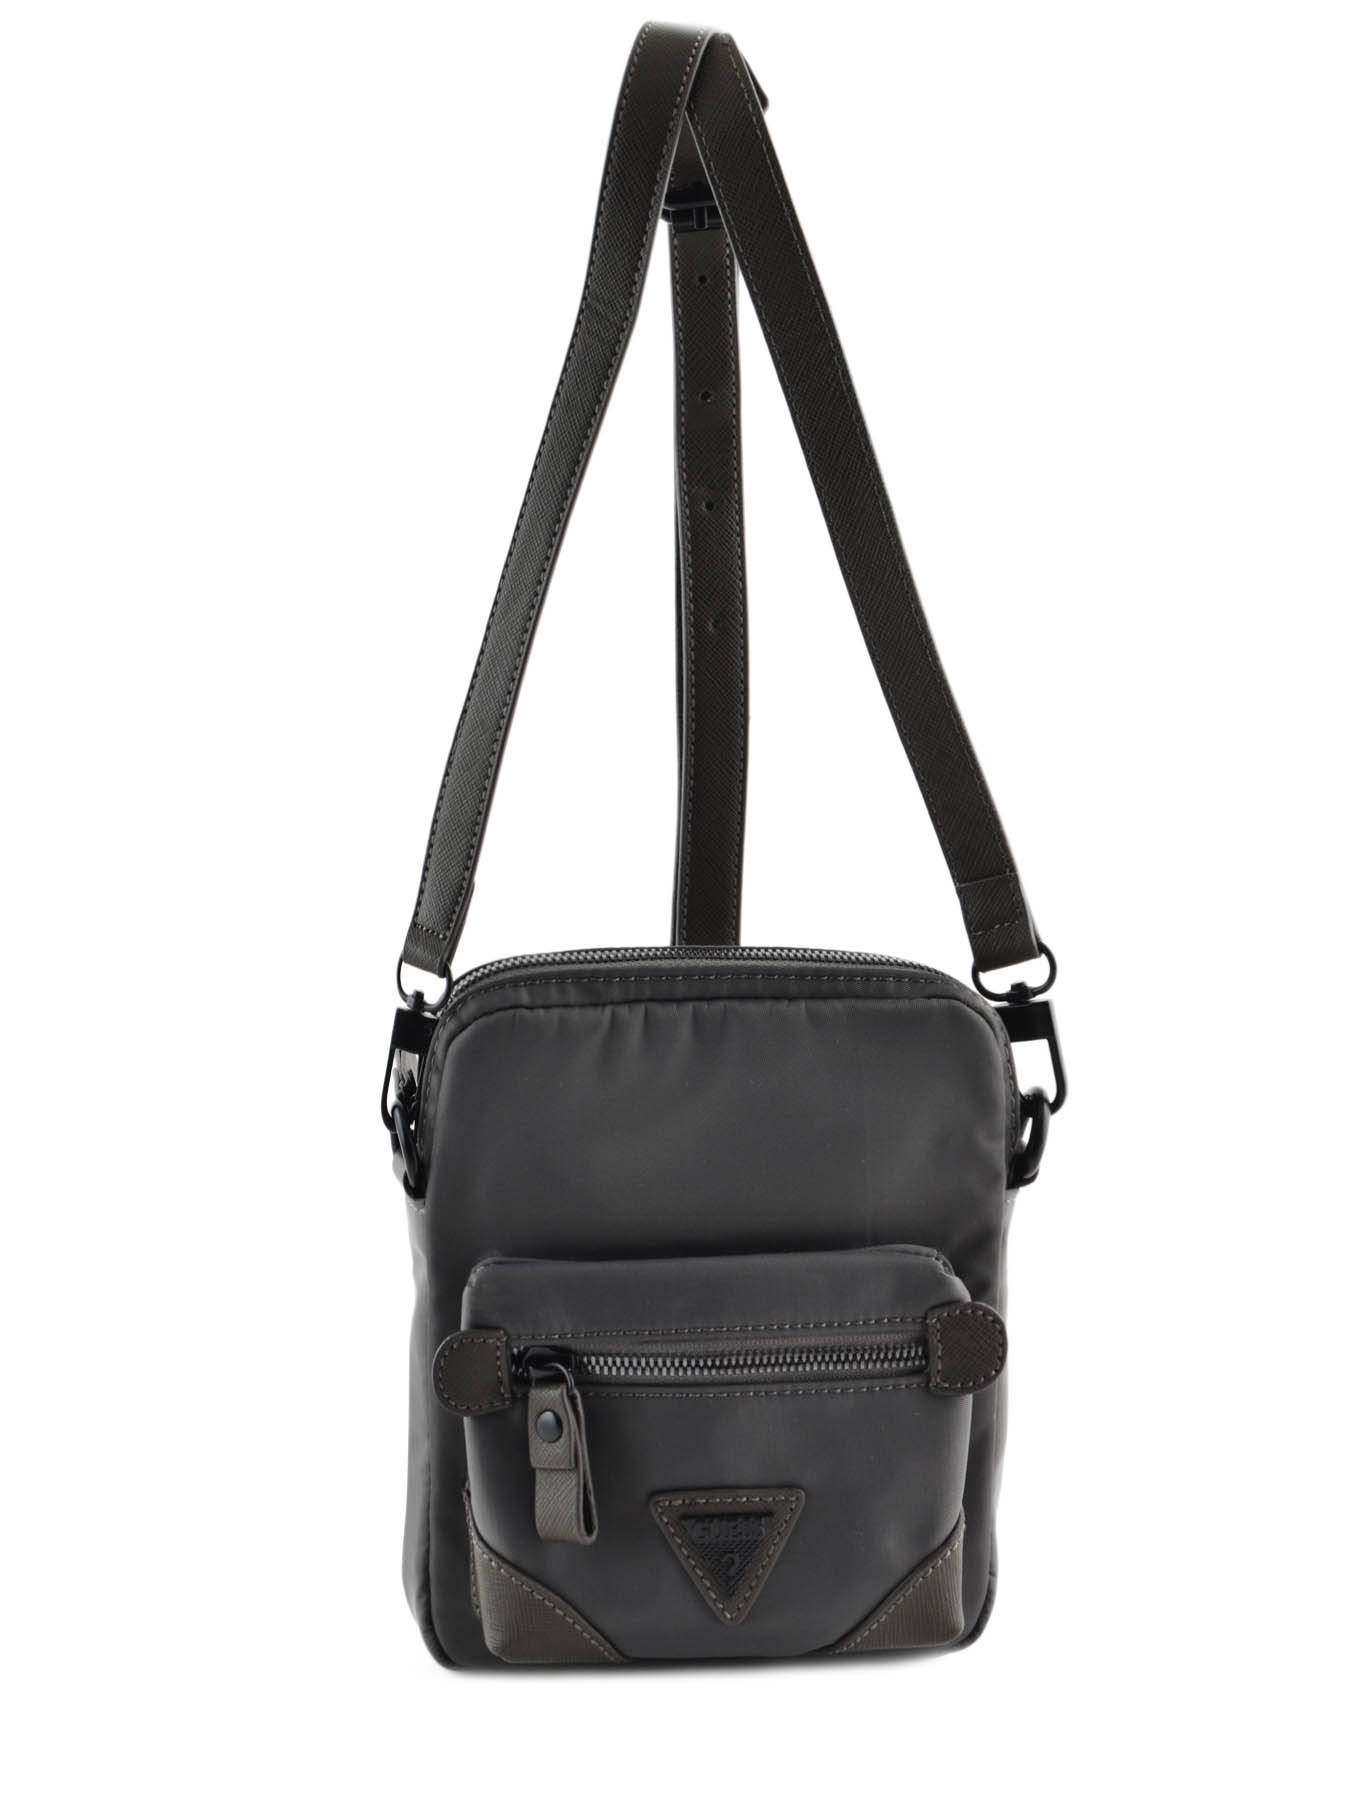 Sac à Bandoulière Guess Homme : Sac homme guess grey crossover nyl